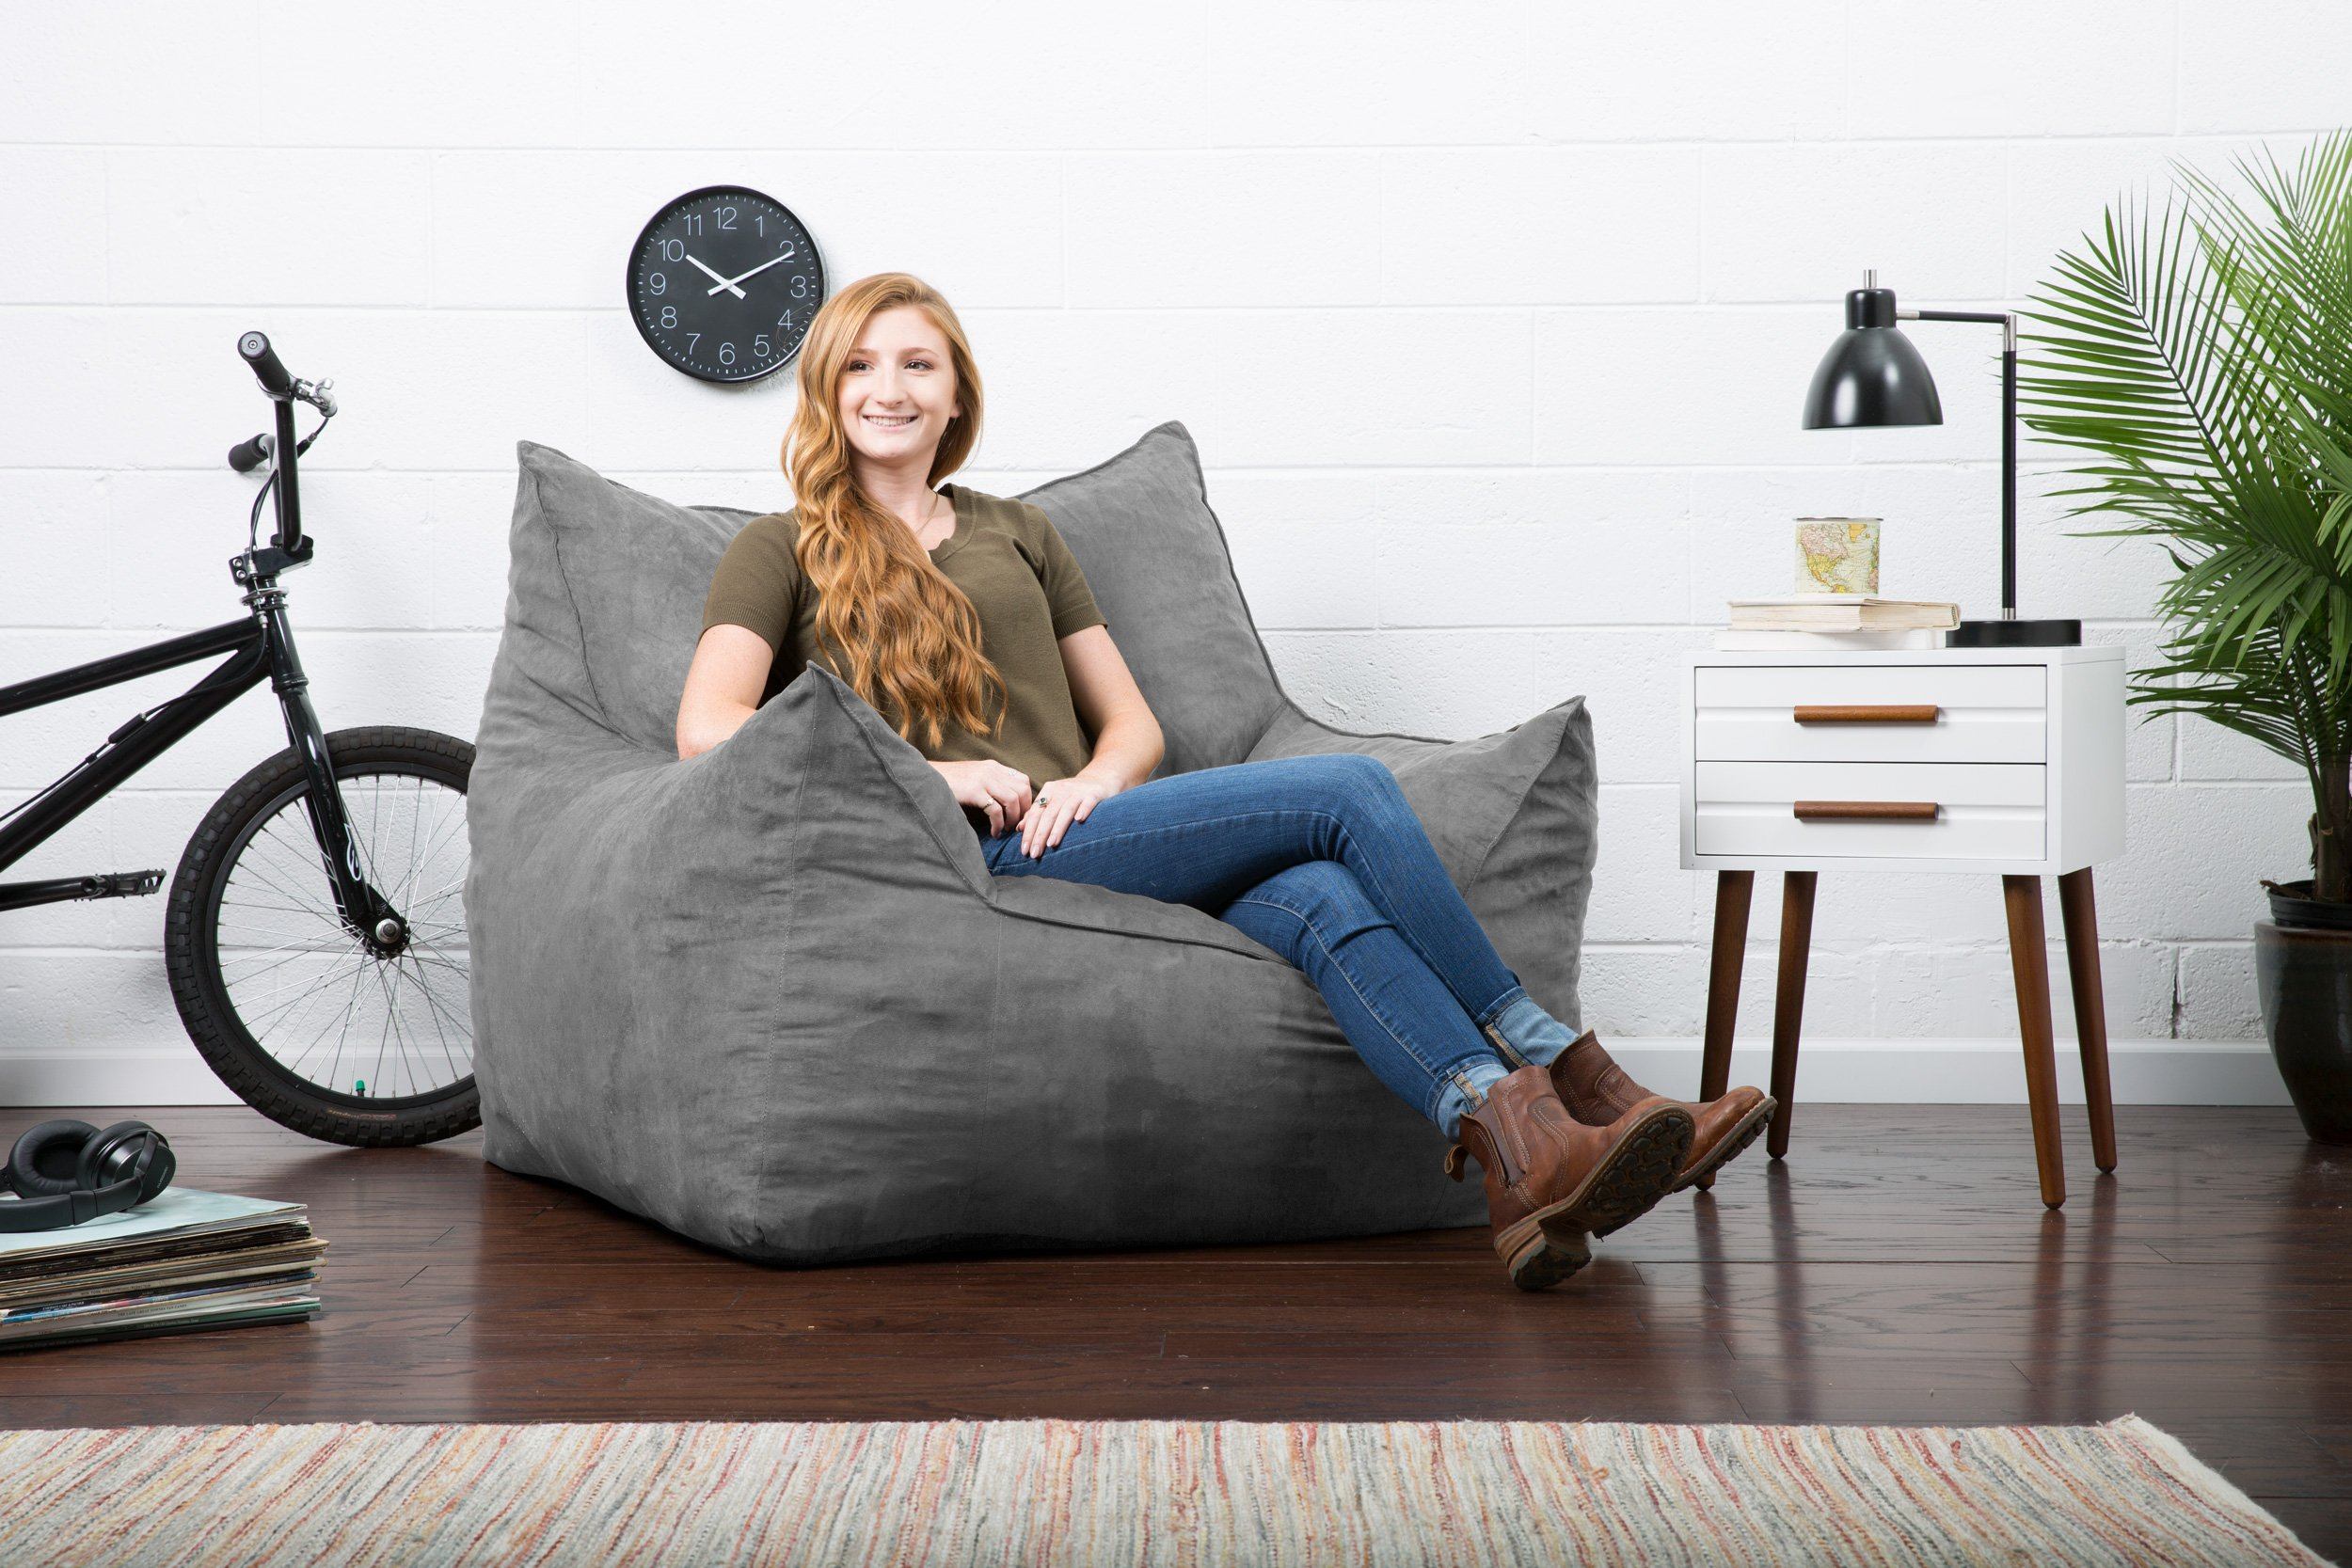 Super 17 Best Bean Bag Chairs Of 2019 To Consider For Your Living Gamerscity Chair Design For Home Gamerscityorg